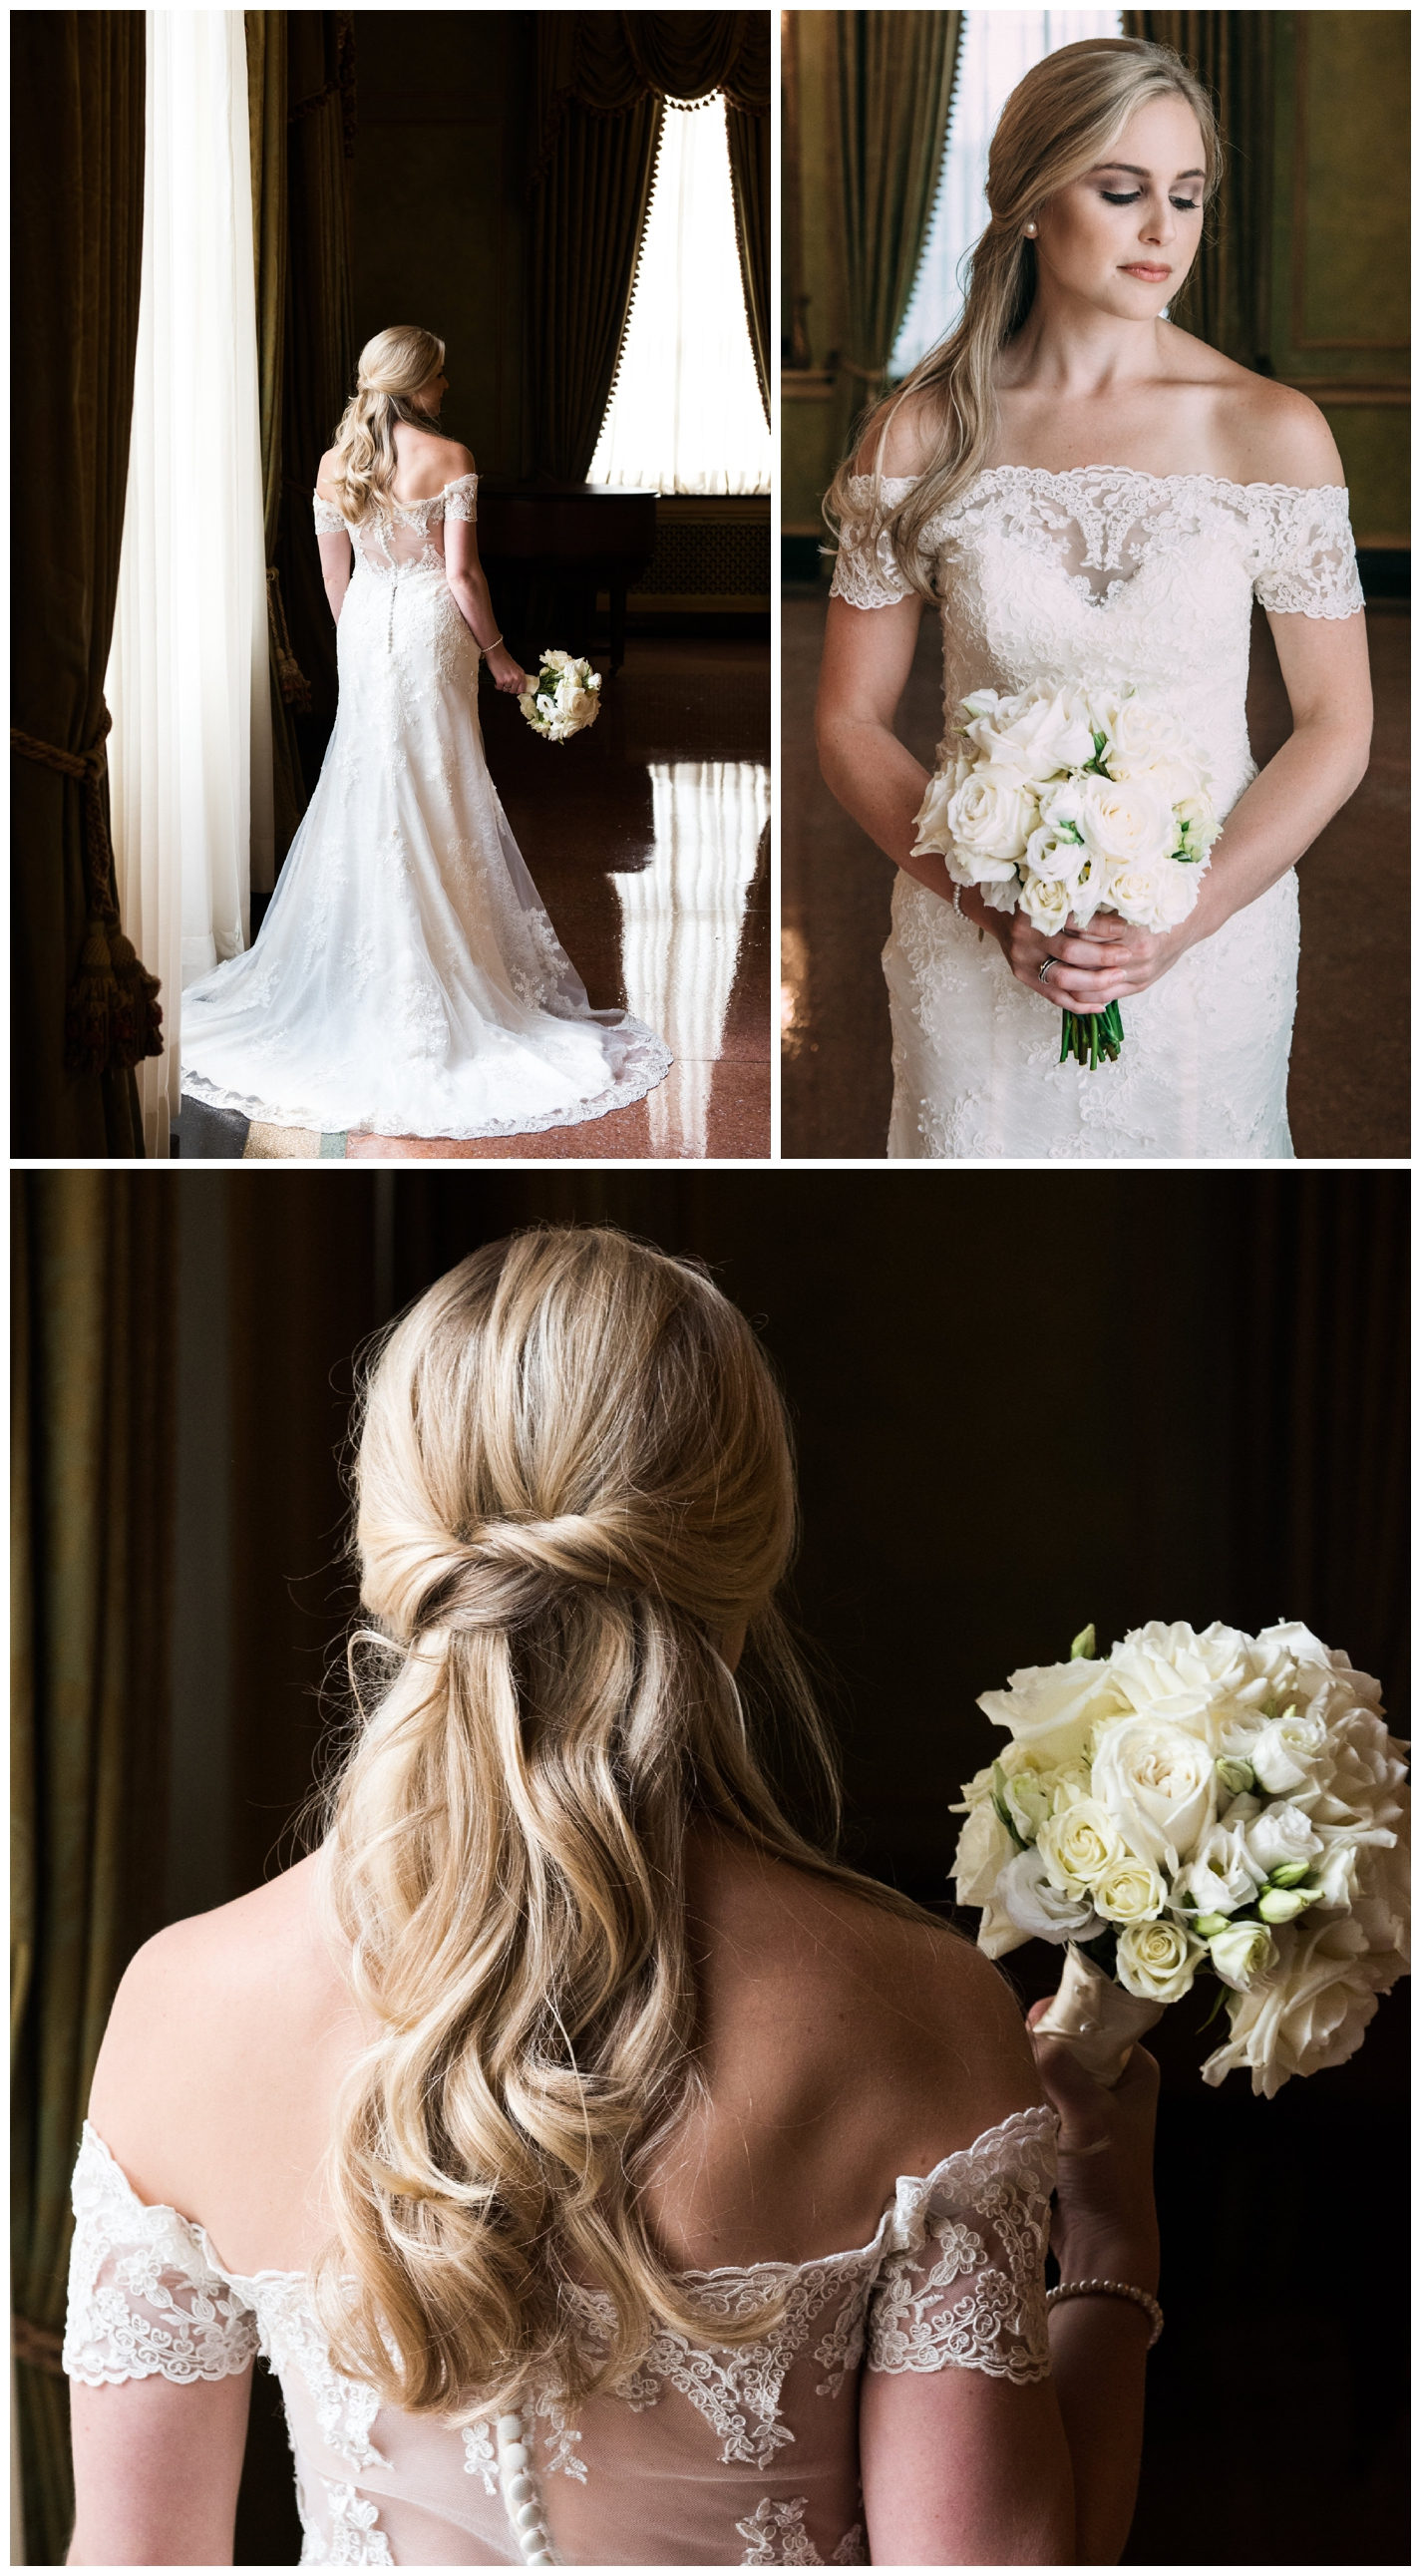 Bridals at Old Governor's Mansion in downtown Baton Rouge, Louisiana.